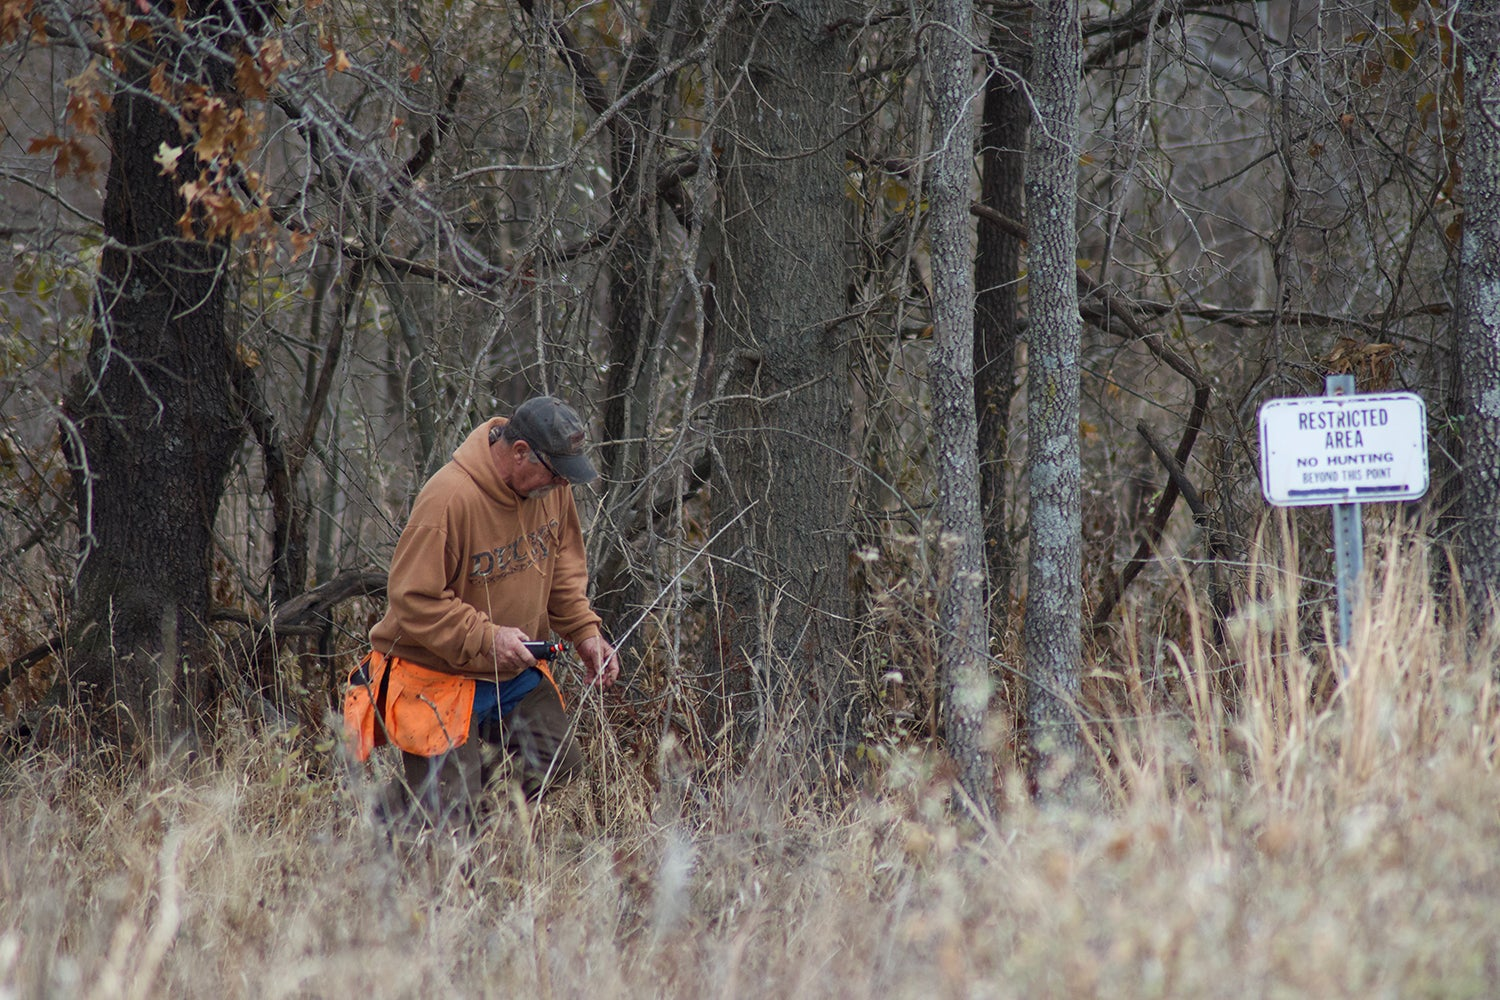 Hunter in a field at a woodline.